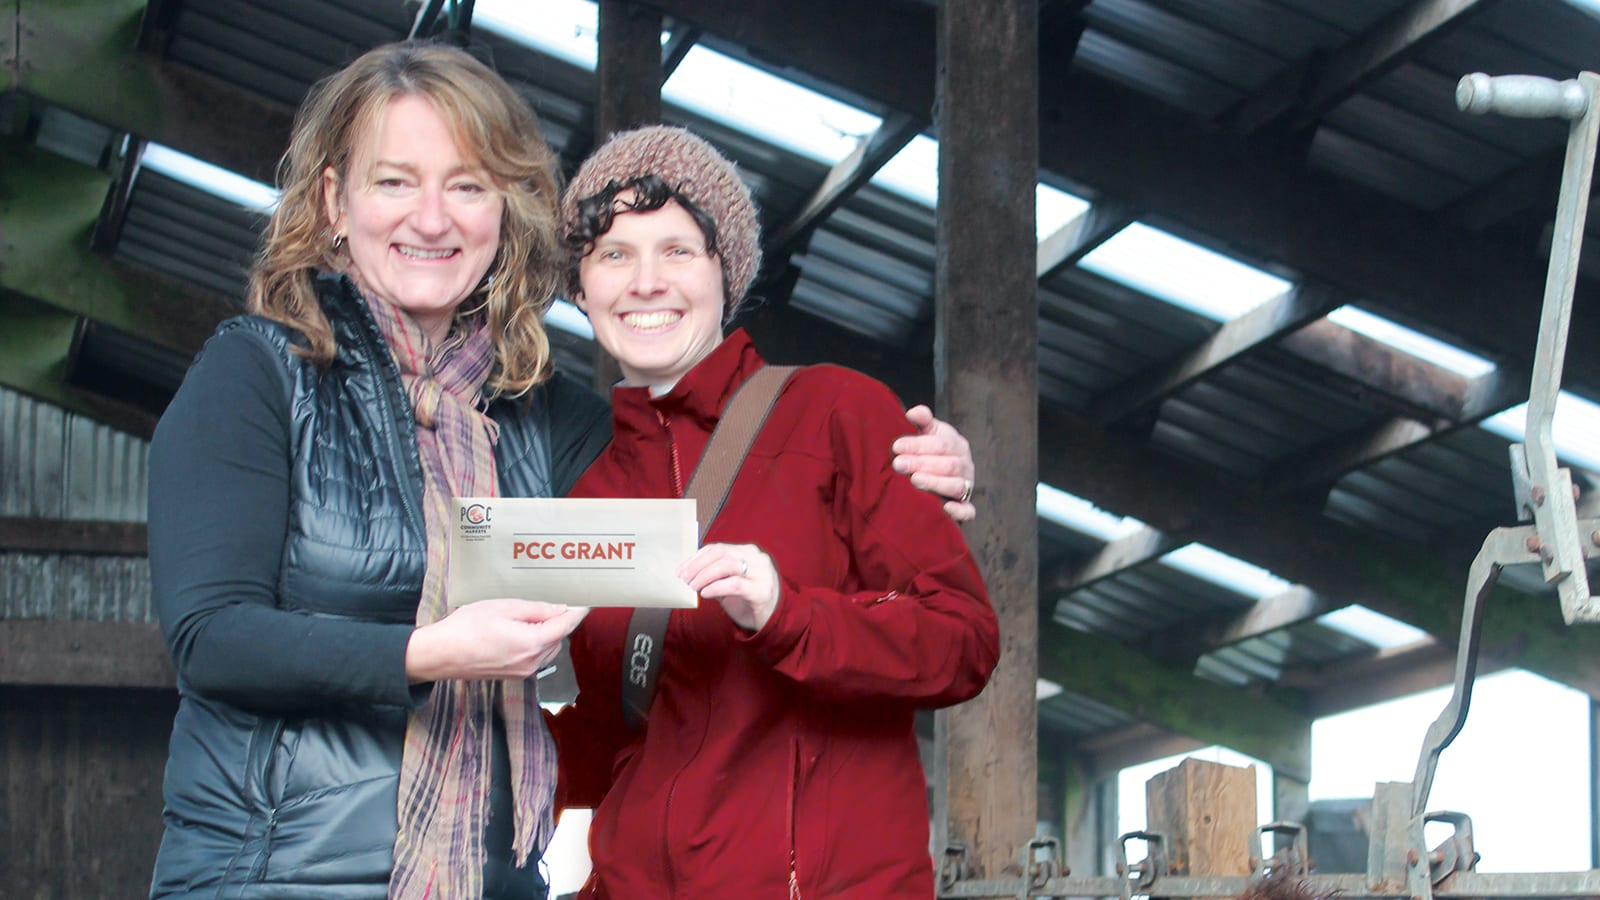 Green Lake Village PCC store director Celeste Coxen gives Jennifer McKeown a PCC Grant.